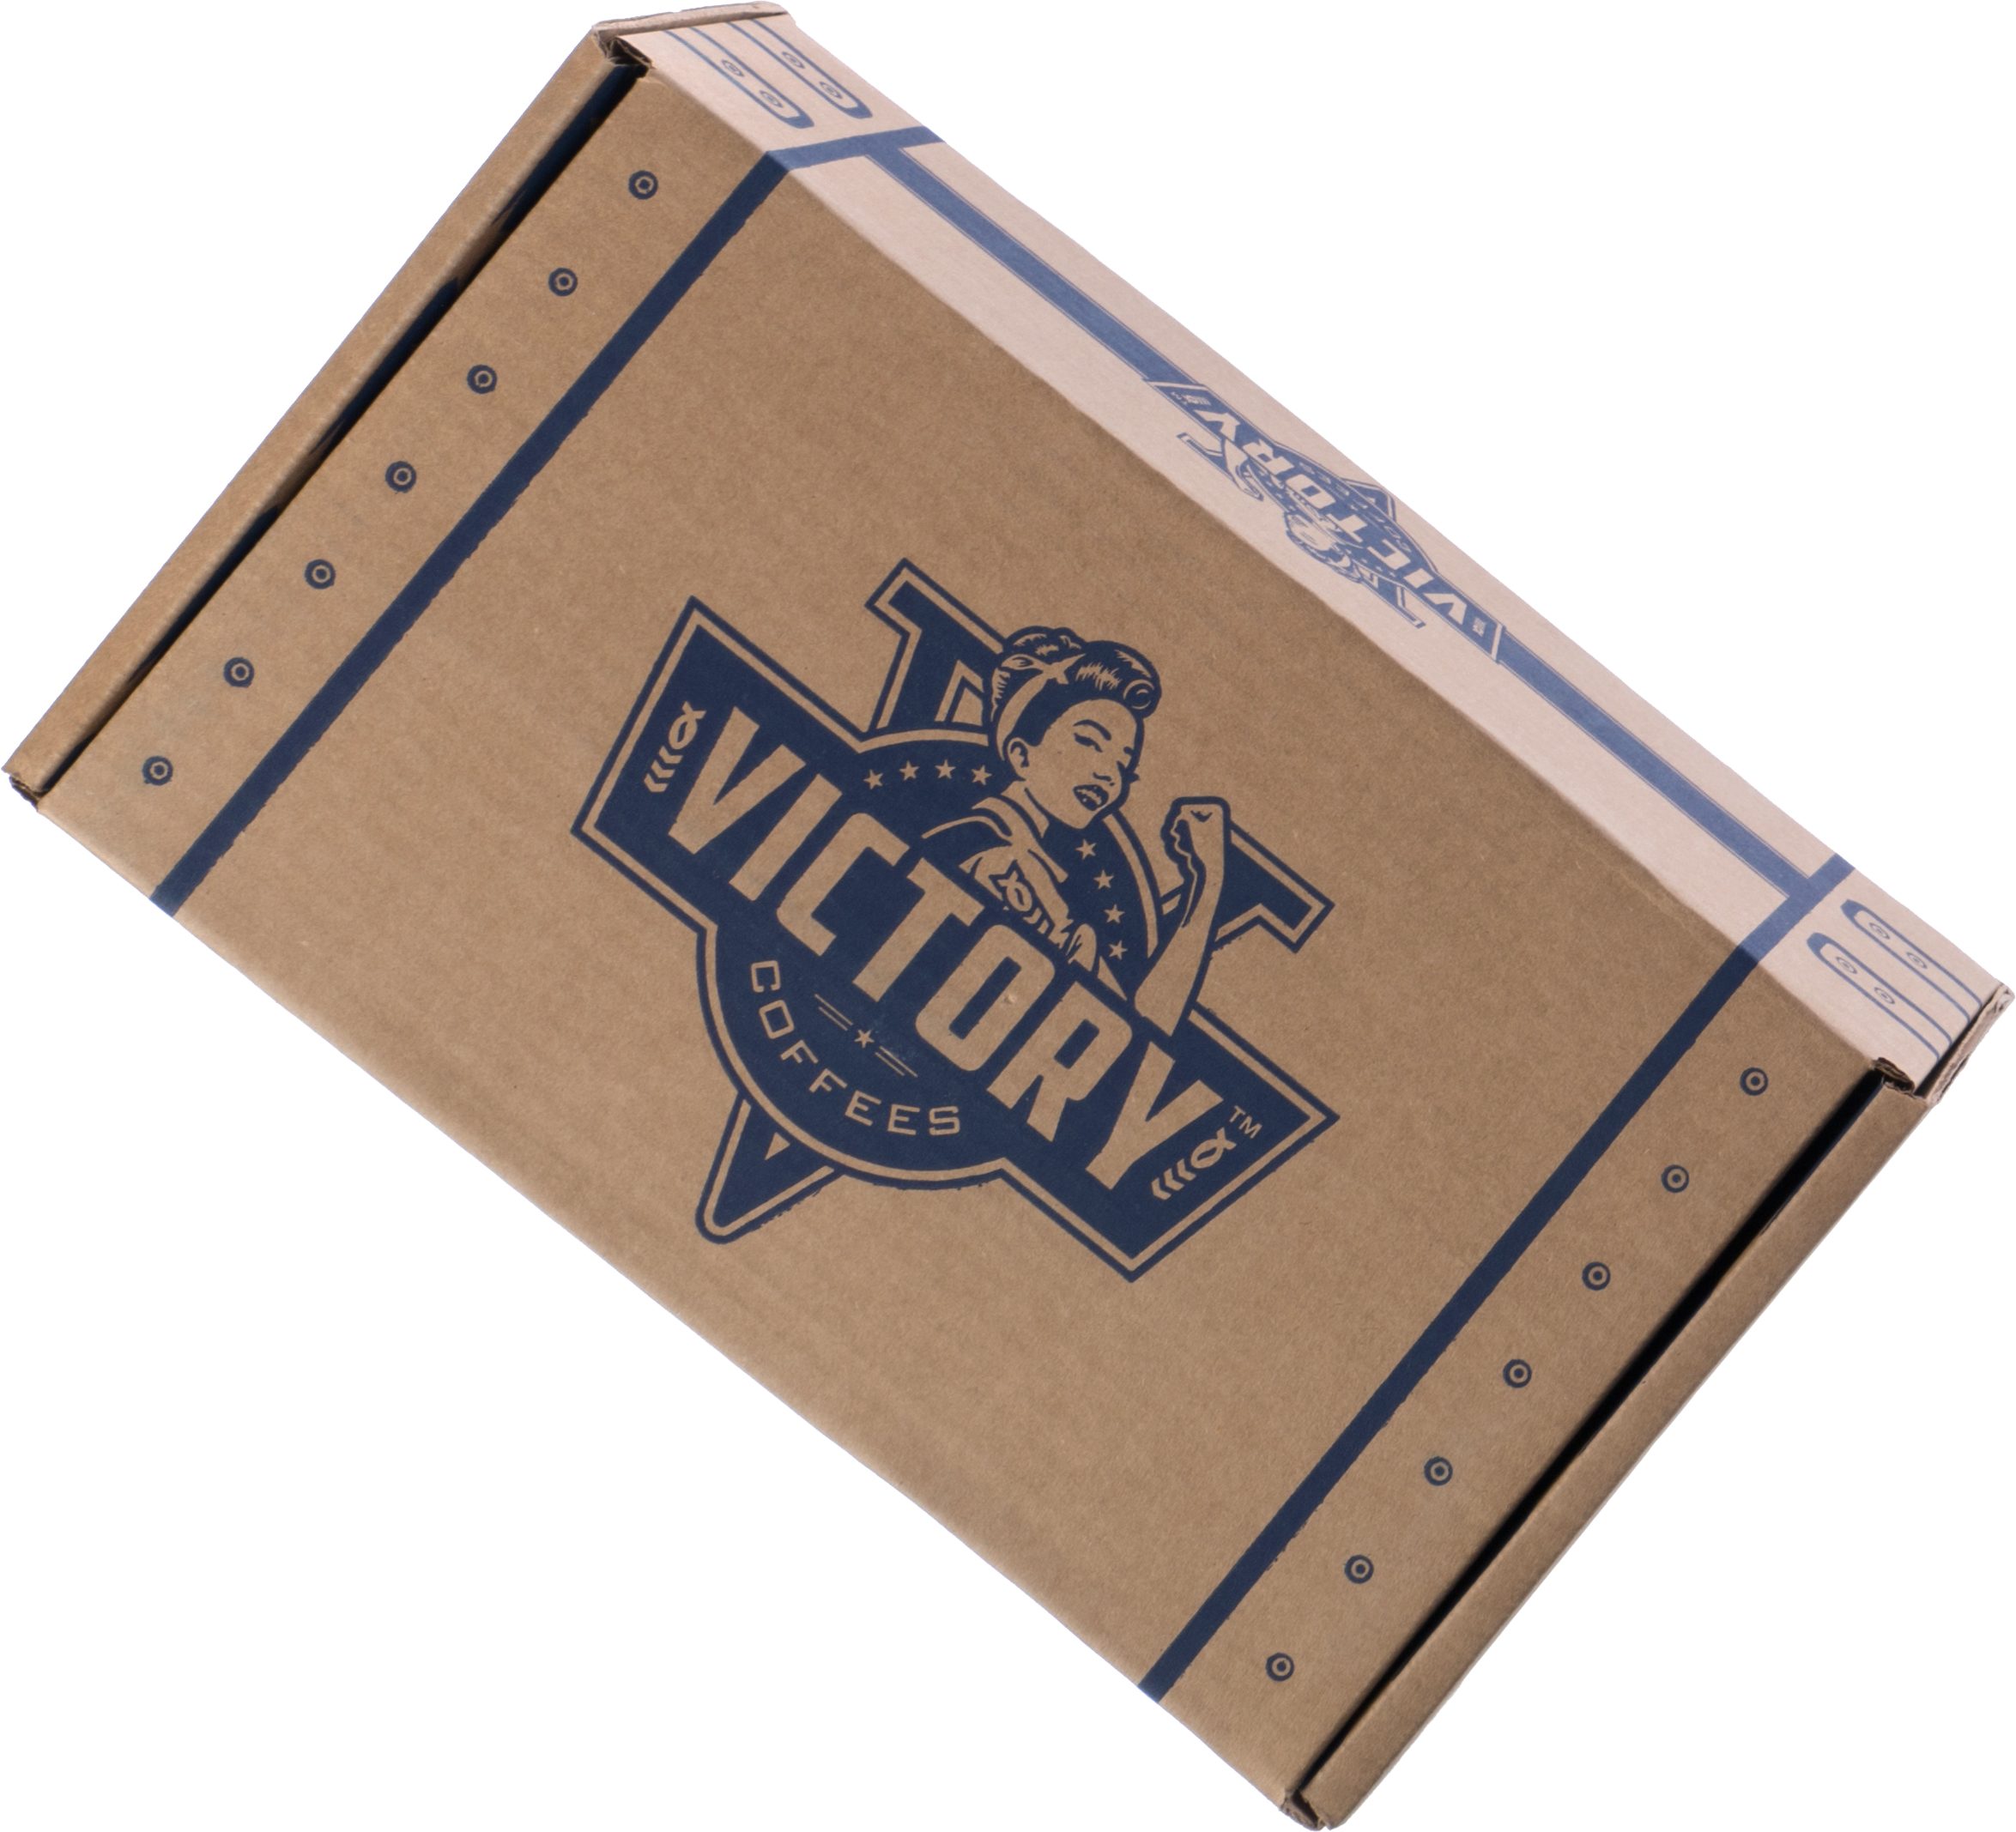 Victory Coffees ships with Cubic Pricing